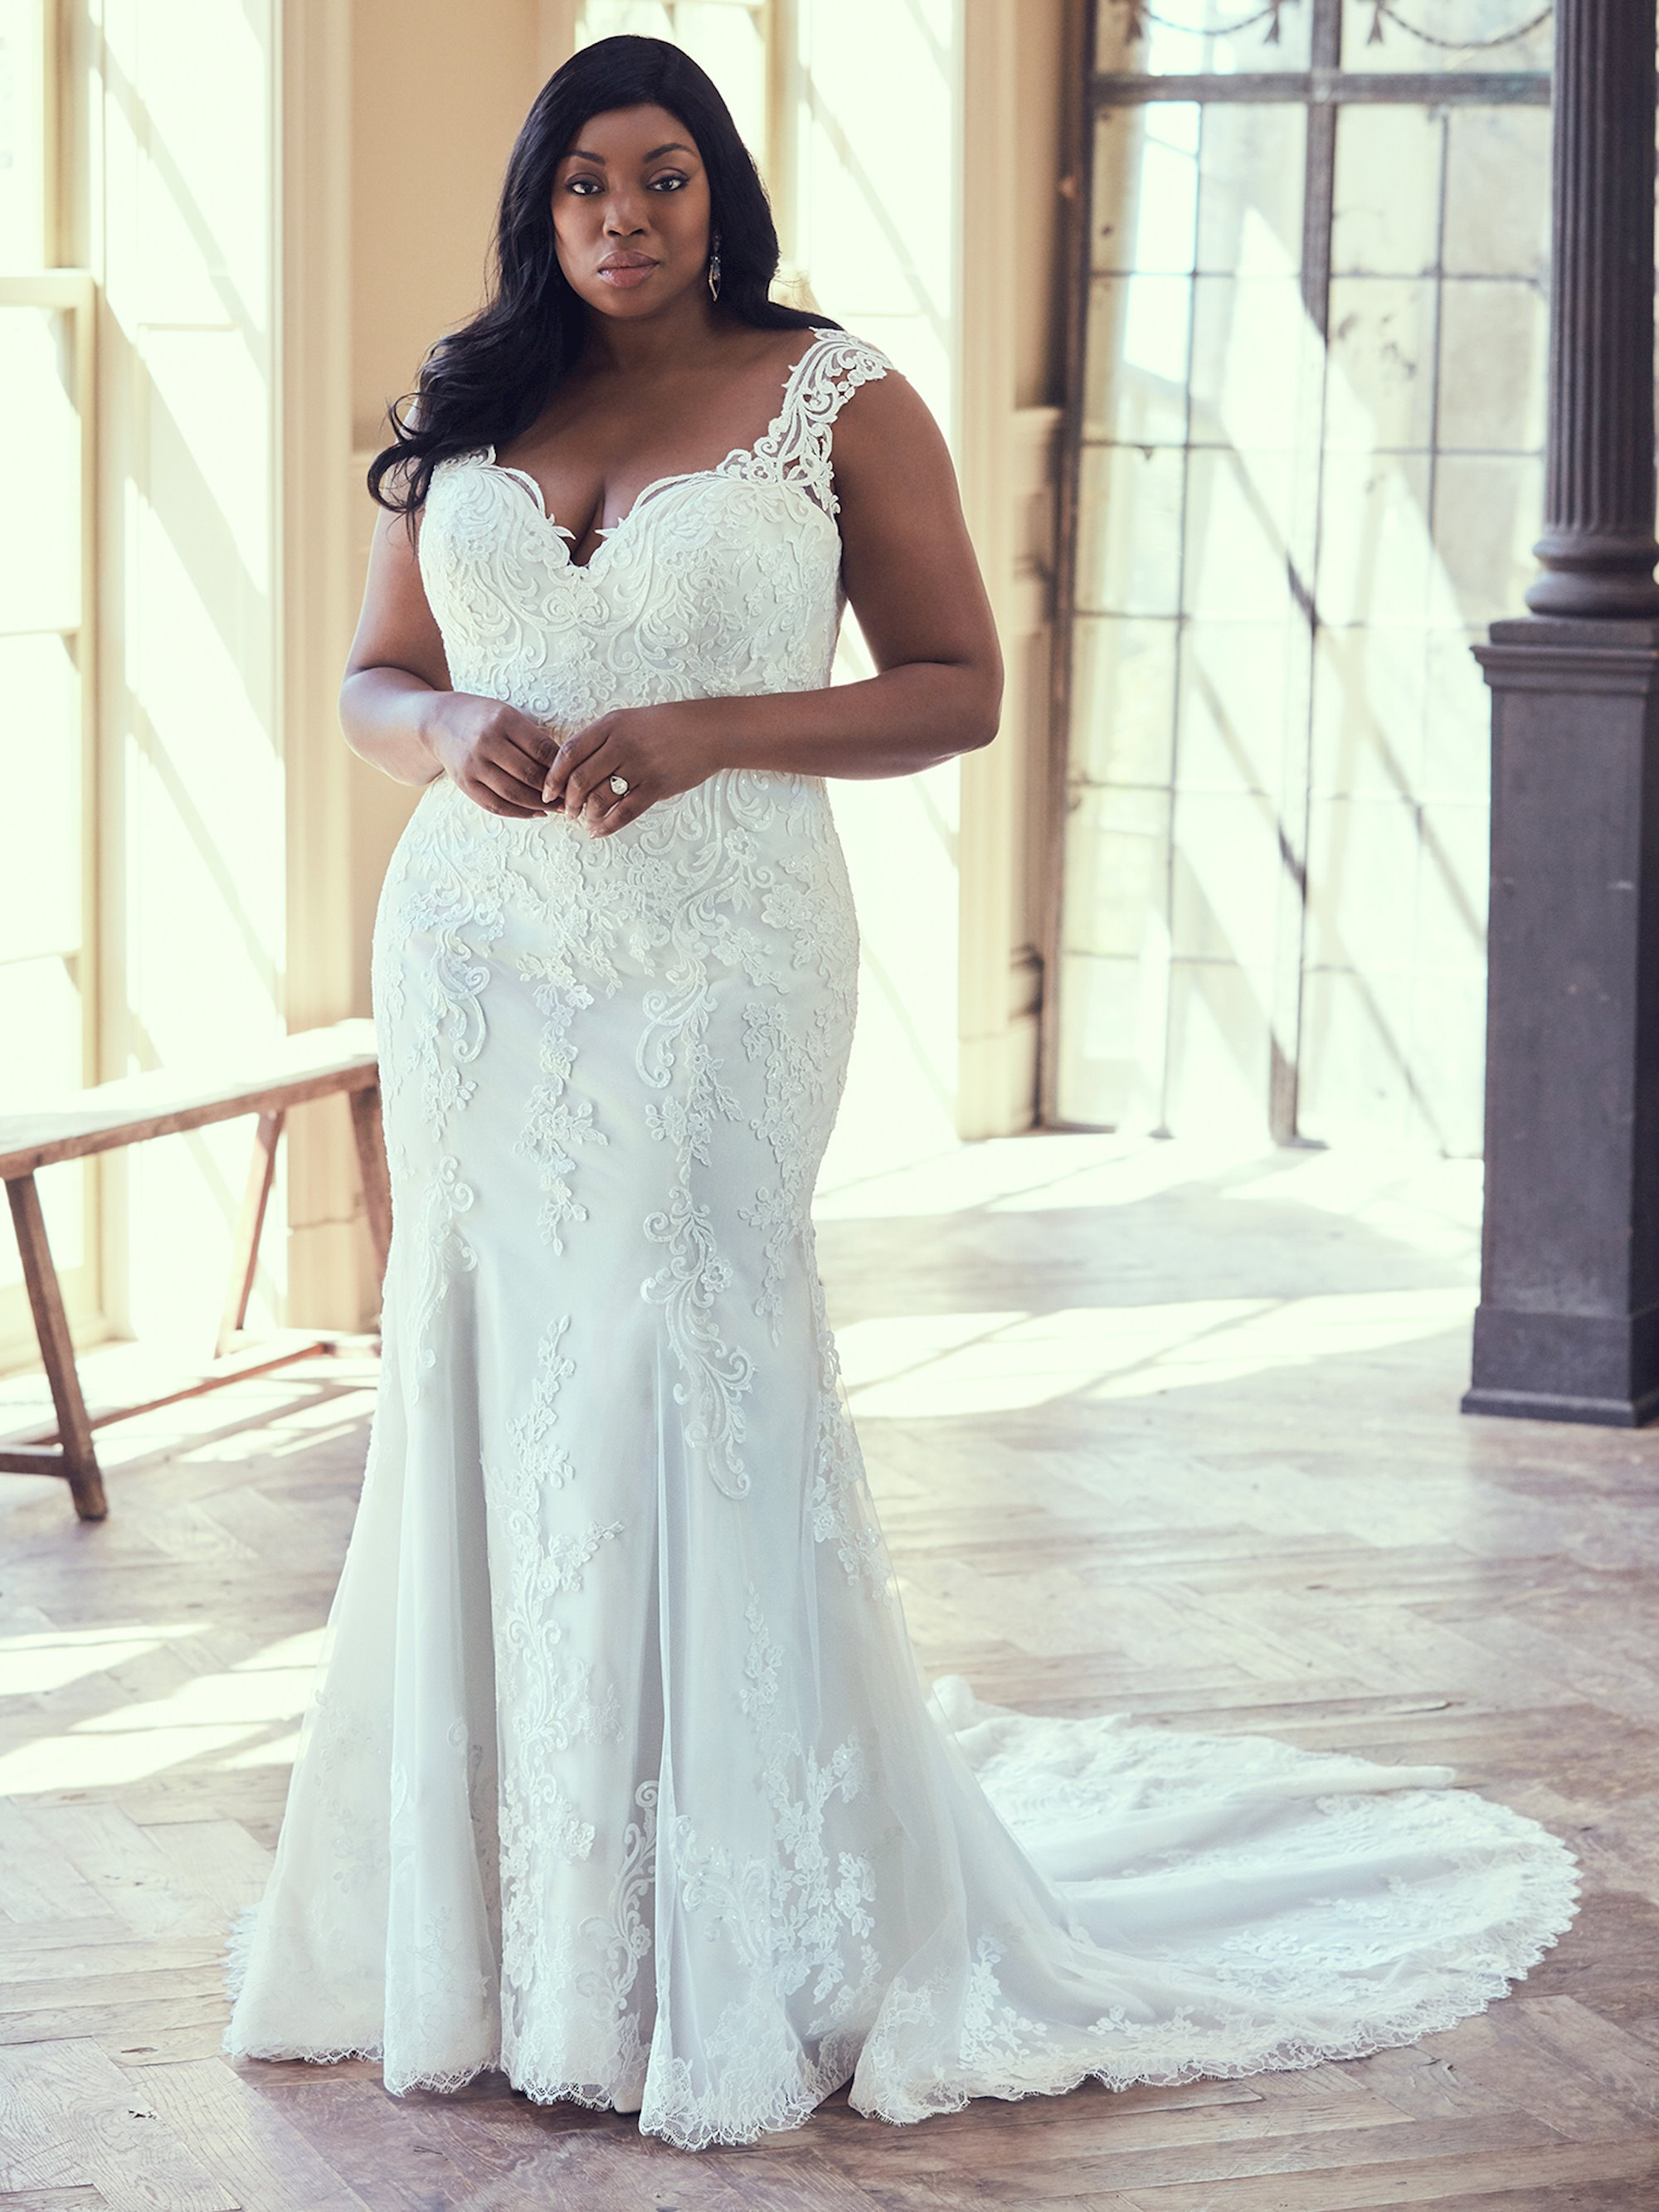 33 Gorgeous Plus Size Wedding Dresses For Every Style And Budget | A ...